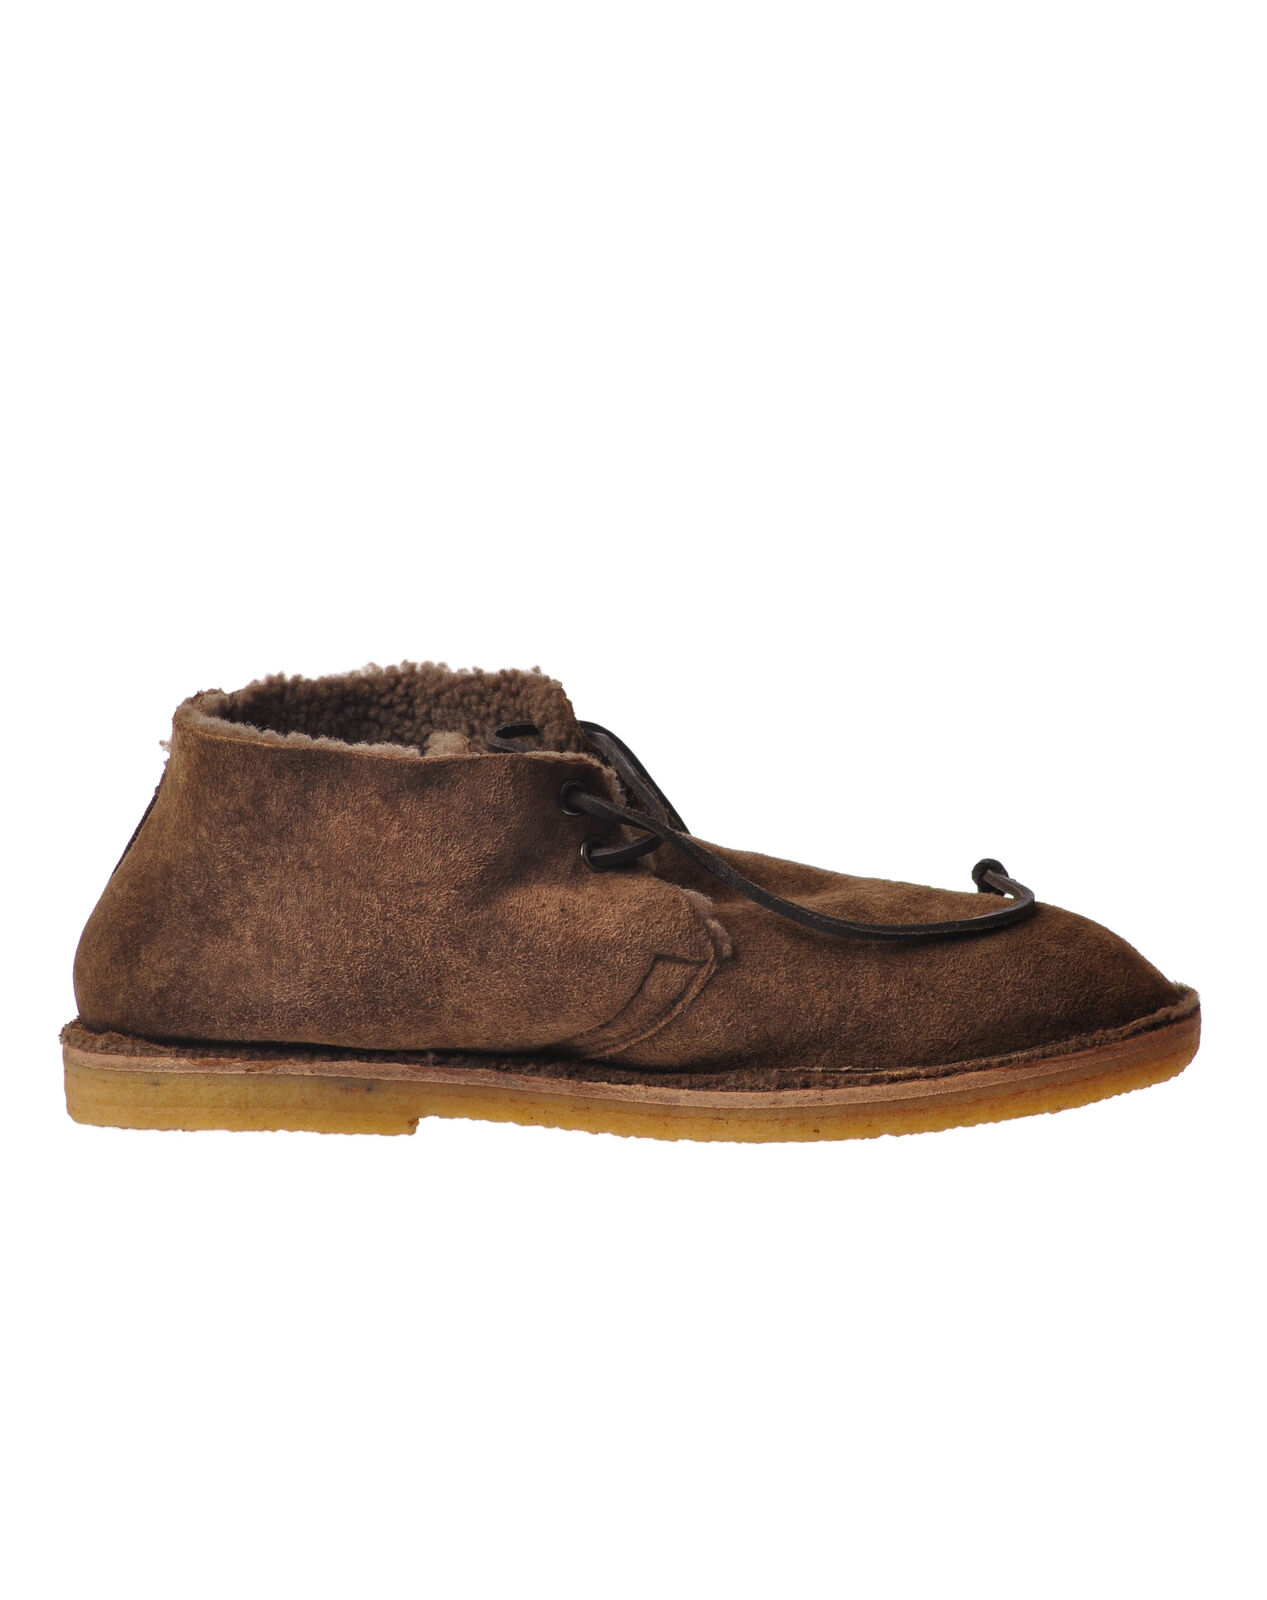 Raparo  -  shoes - Male - Brown - 3453220A185903